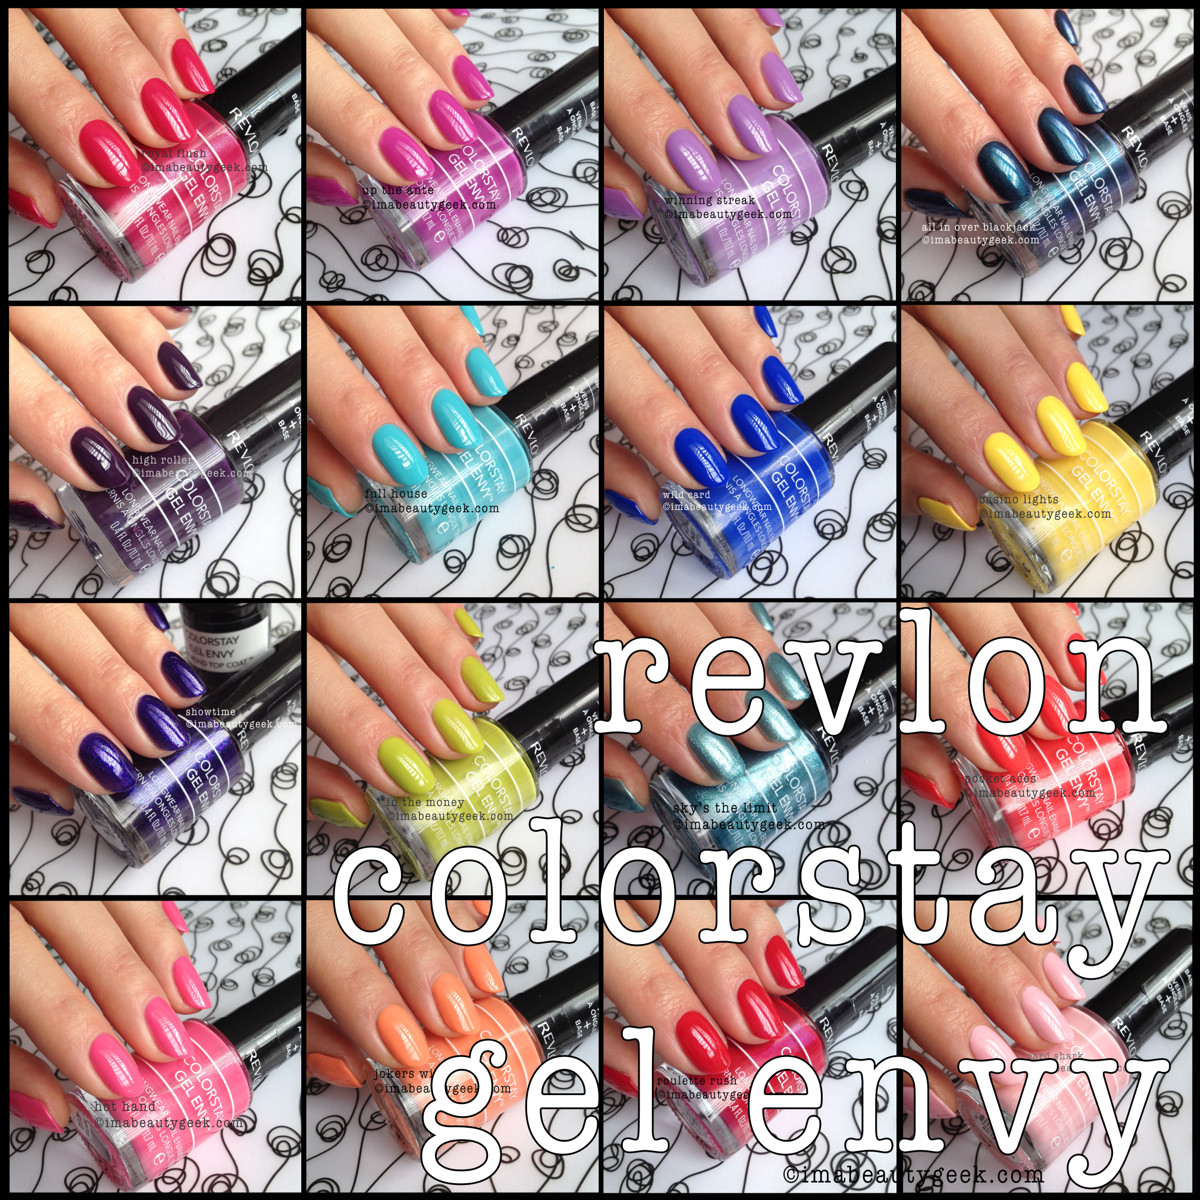 REVLON GEL ENVY LONGWEAR POLISH: REVIEW AND SWATCHFEST - Beautygeeks